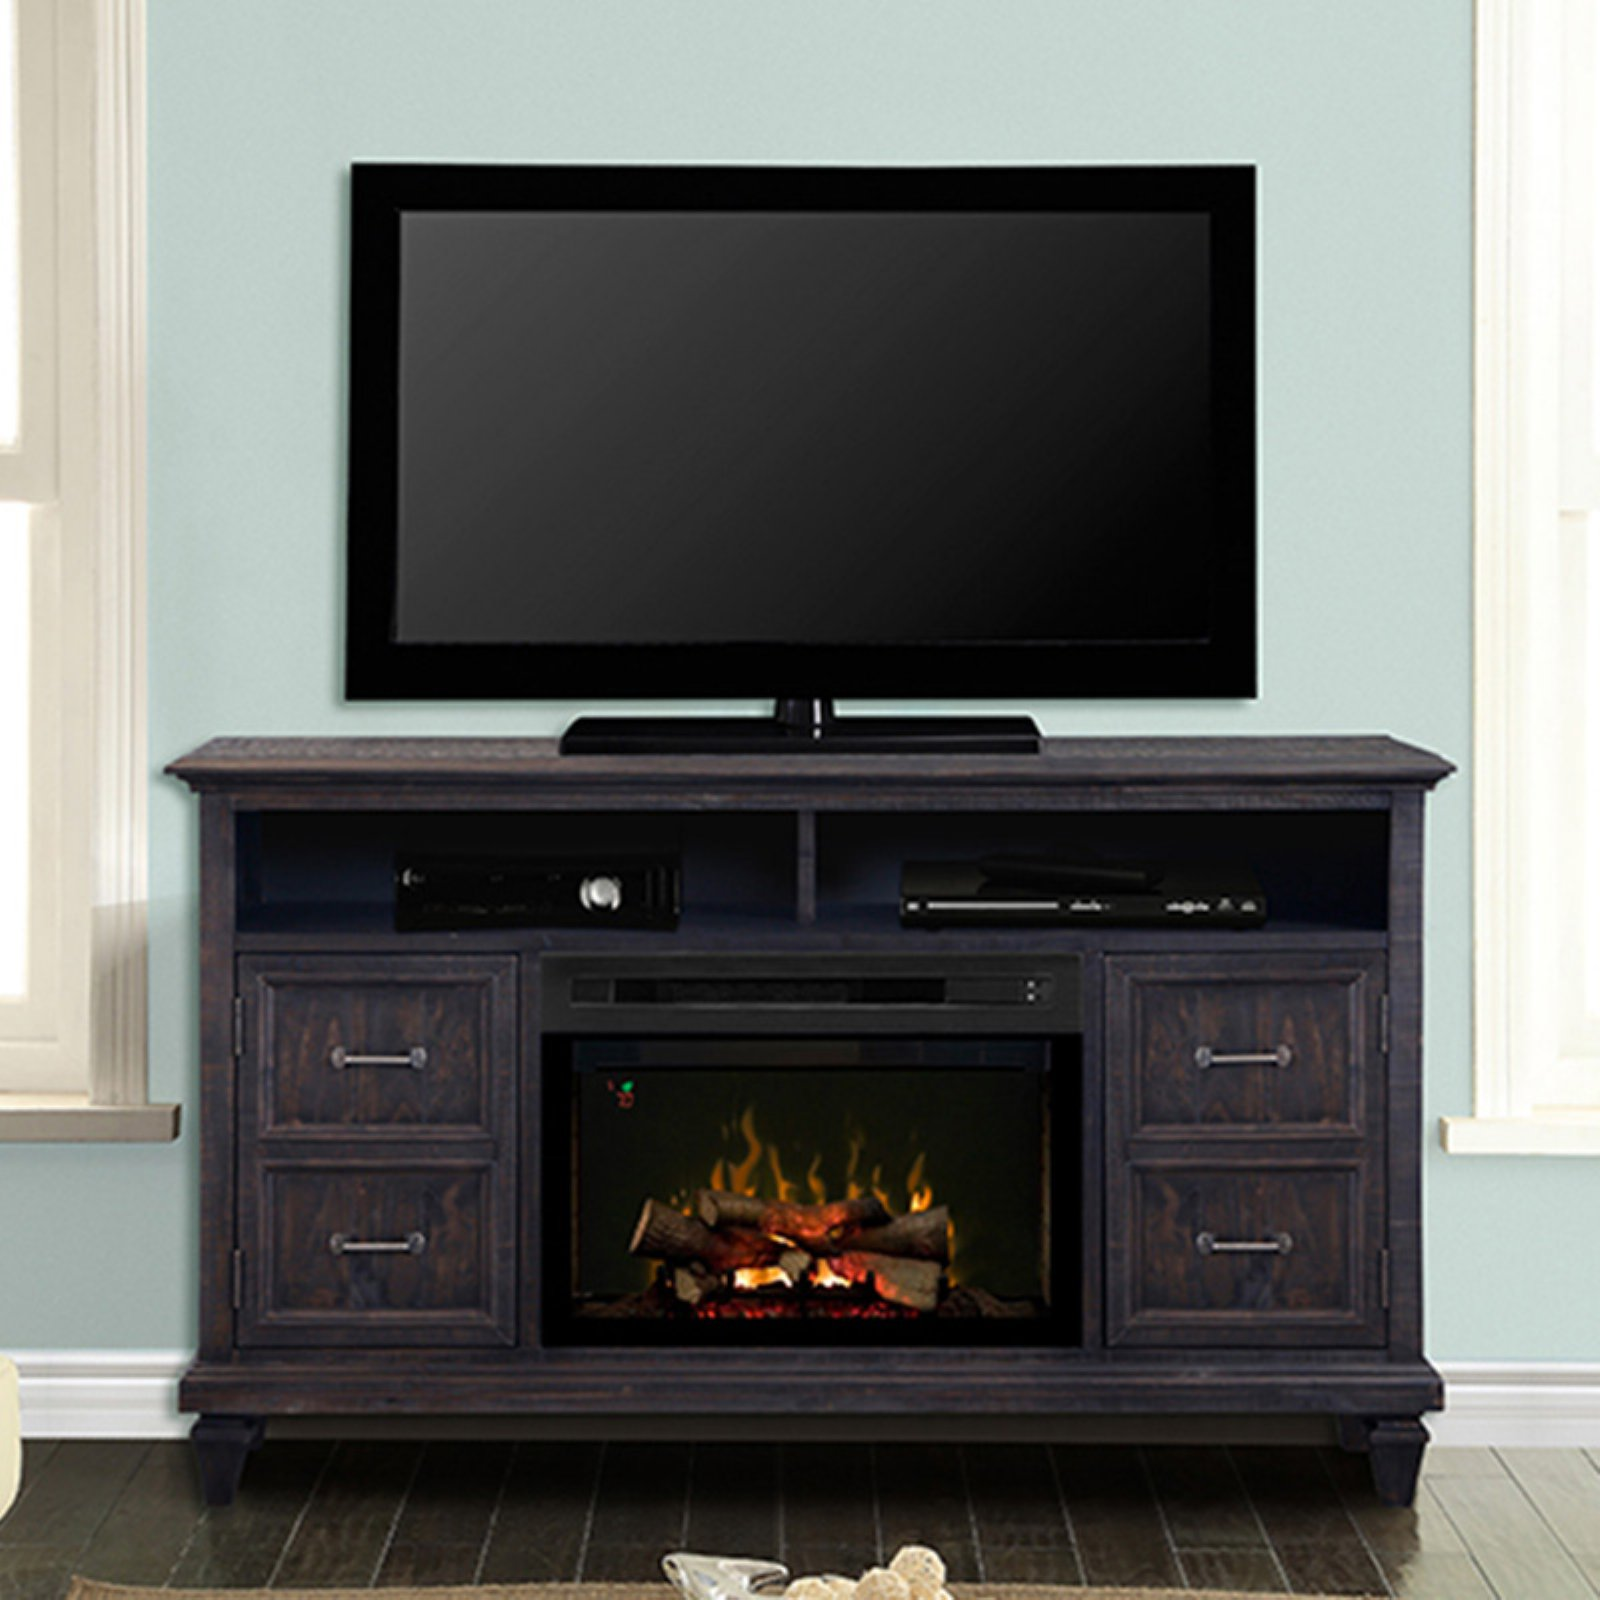 Dimplex Solomon Media Console with Electric Fireplace